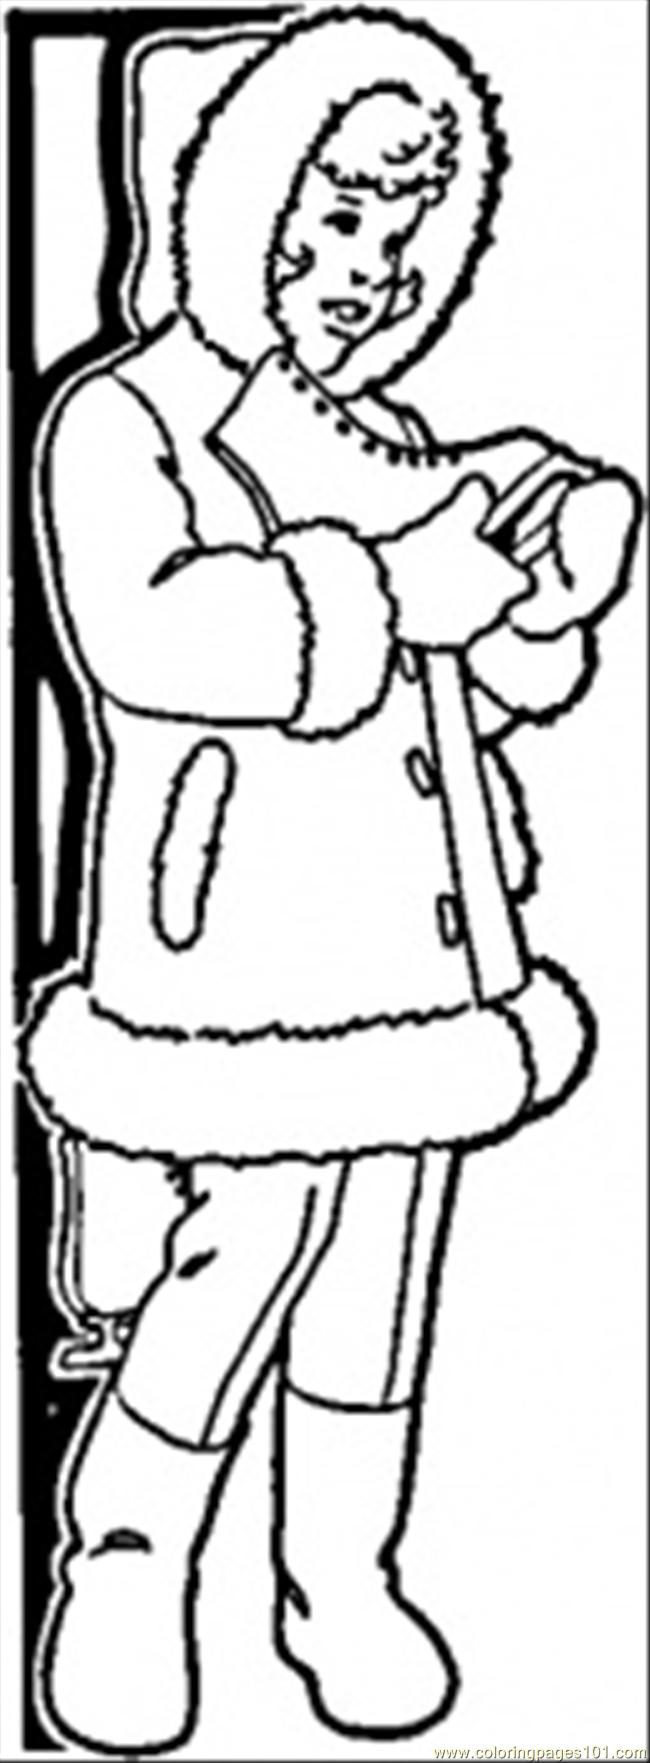 coloring pages of winter coats warm winter coat coloring page free clothing coloring of coloring winter pages coats